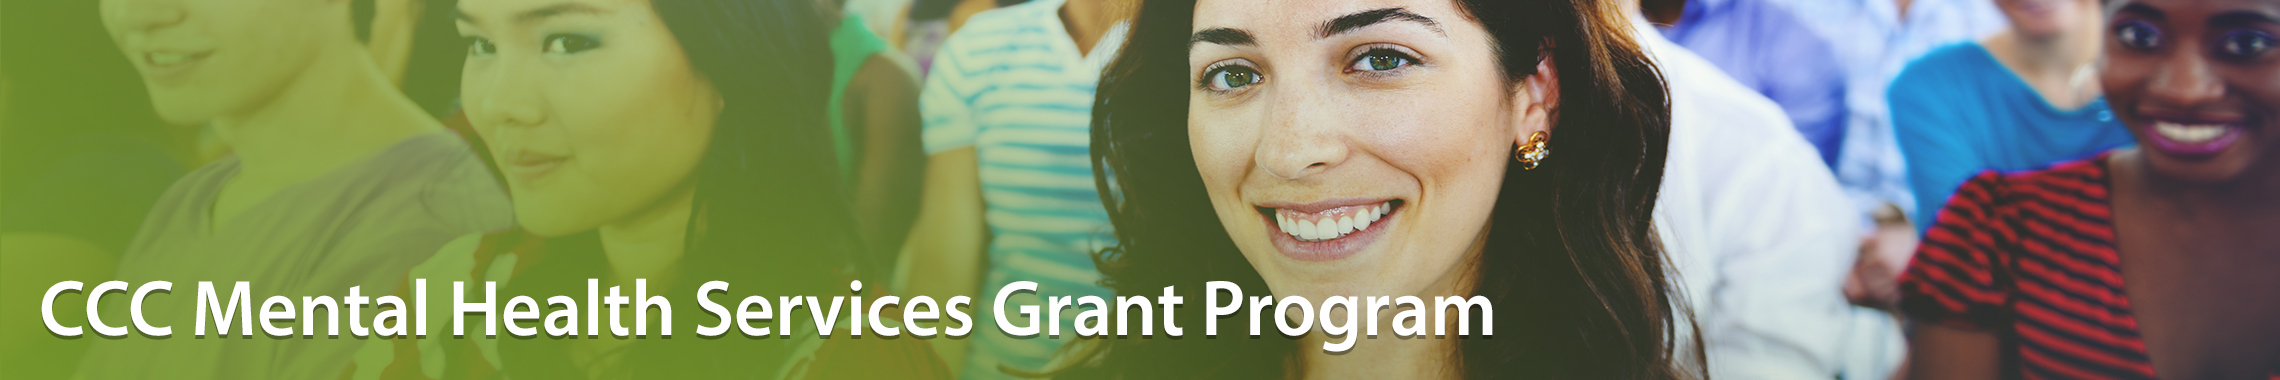 CCC Mental Health Services Grant Program page header with seated optimistic students